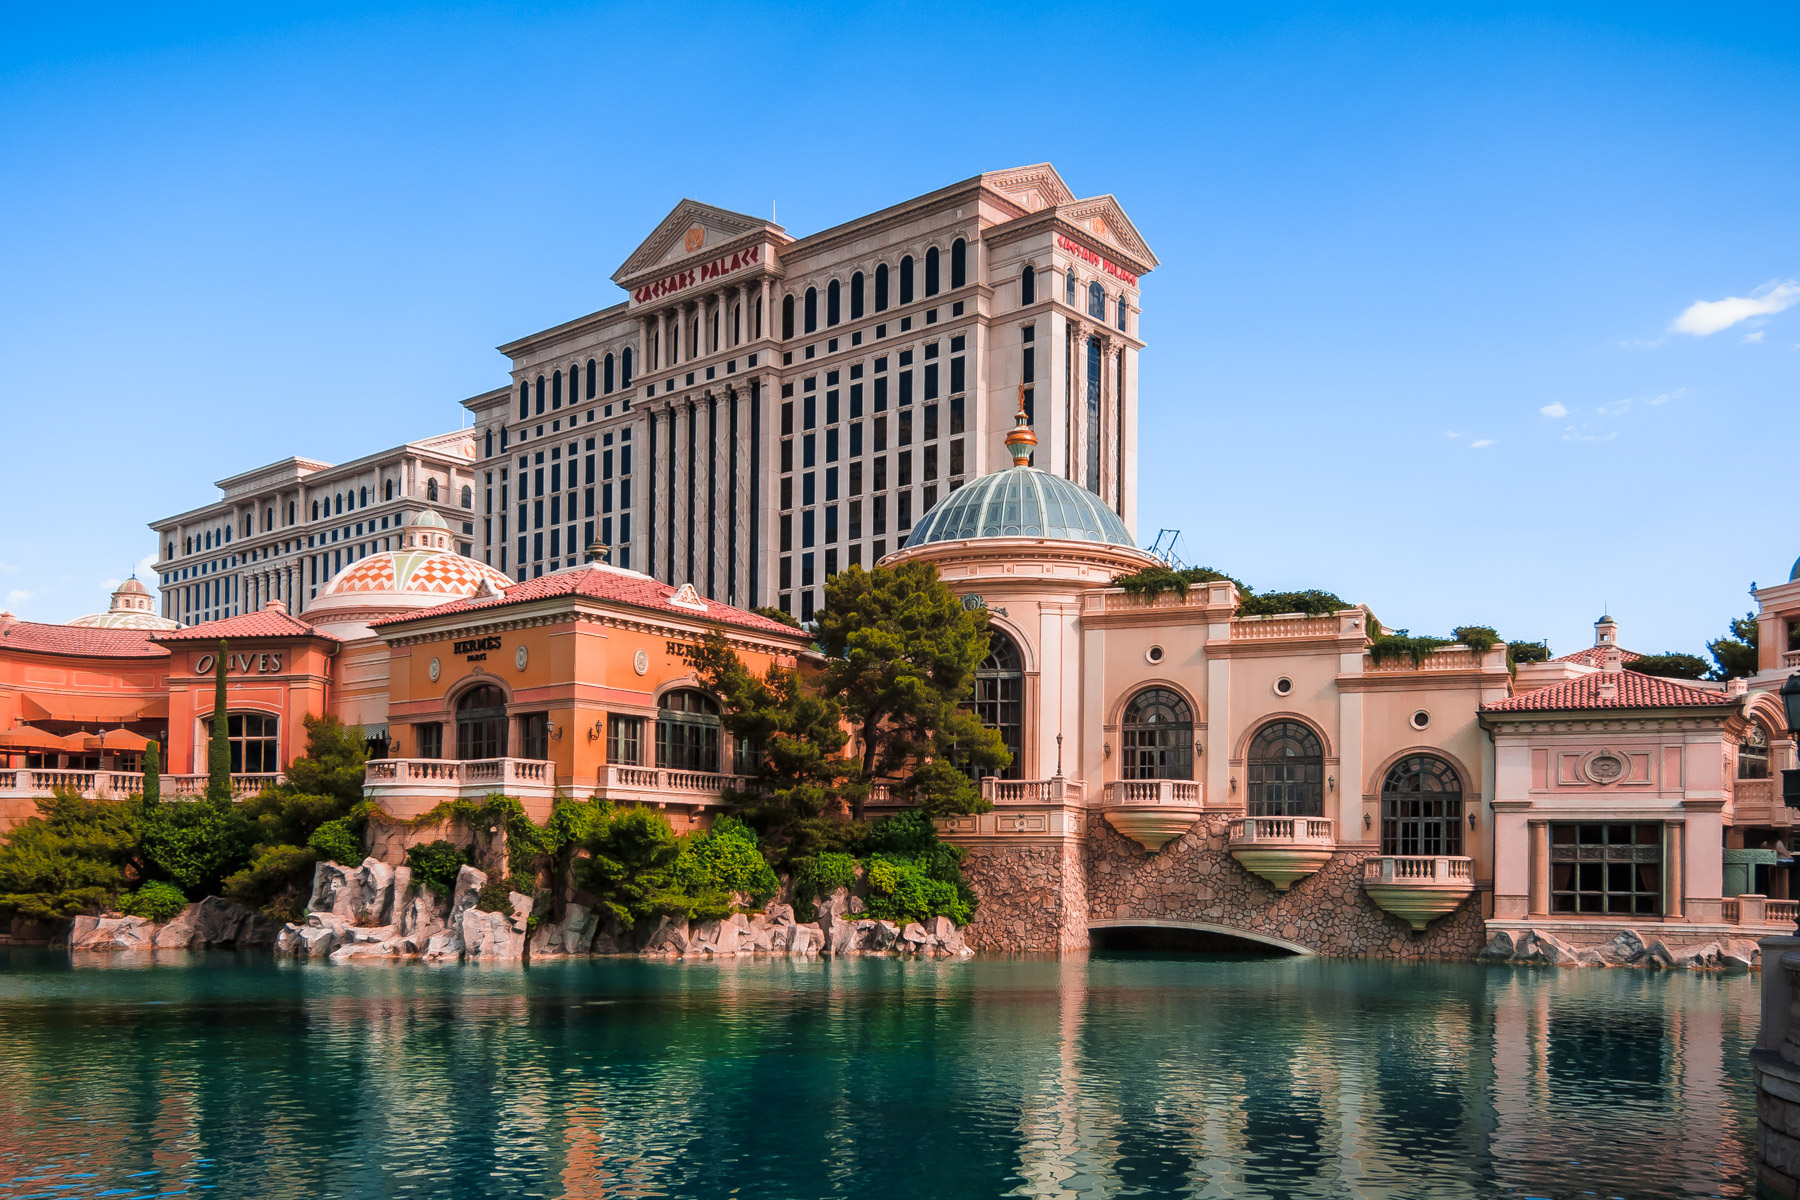 Two of Las Vegas' Caesars Palace's six towers—along with a portion of the Bellagio—are reflected in the 8-acre artificial lake in front of the latter hotel.